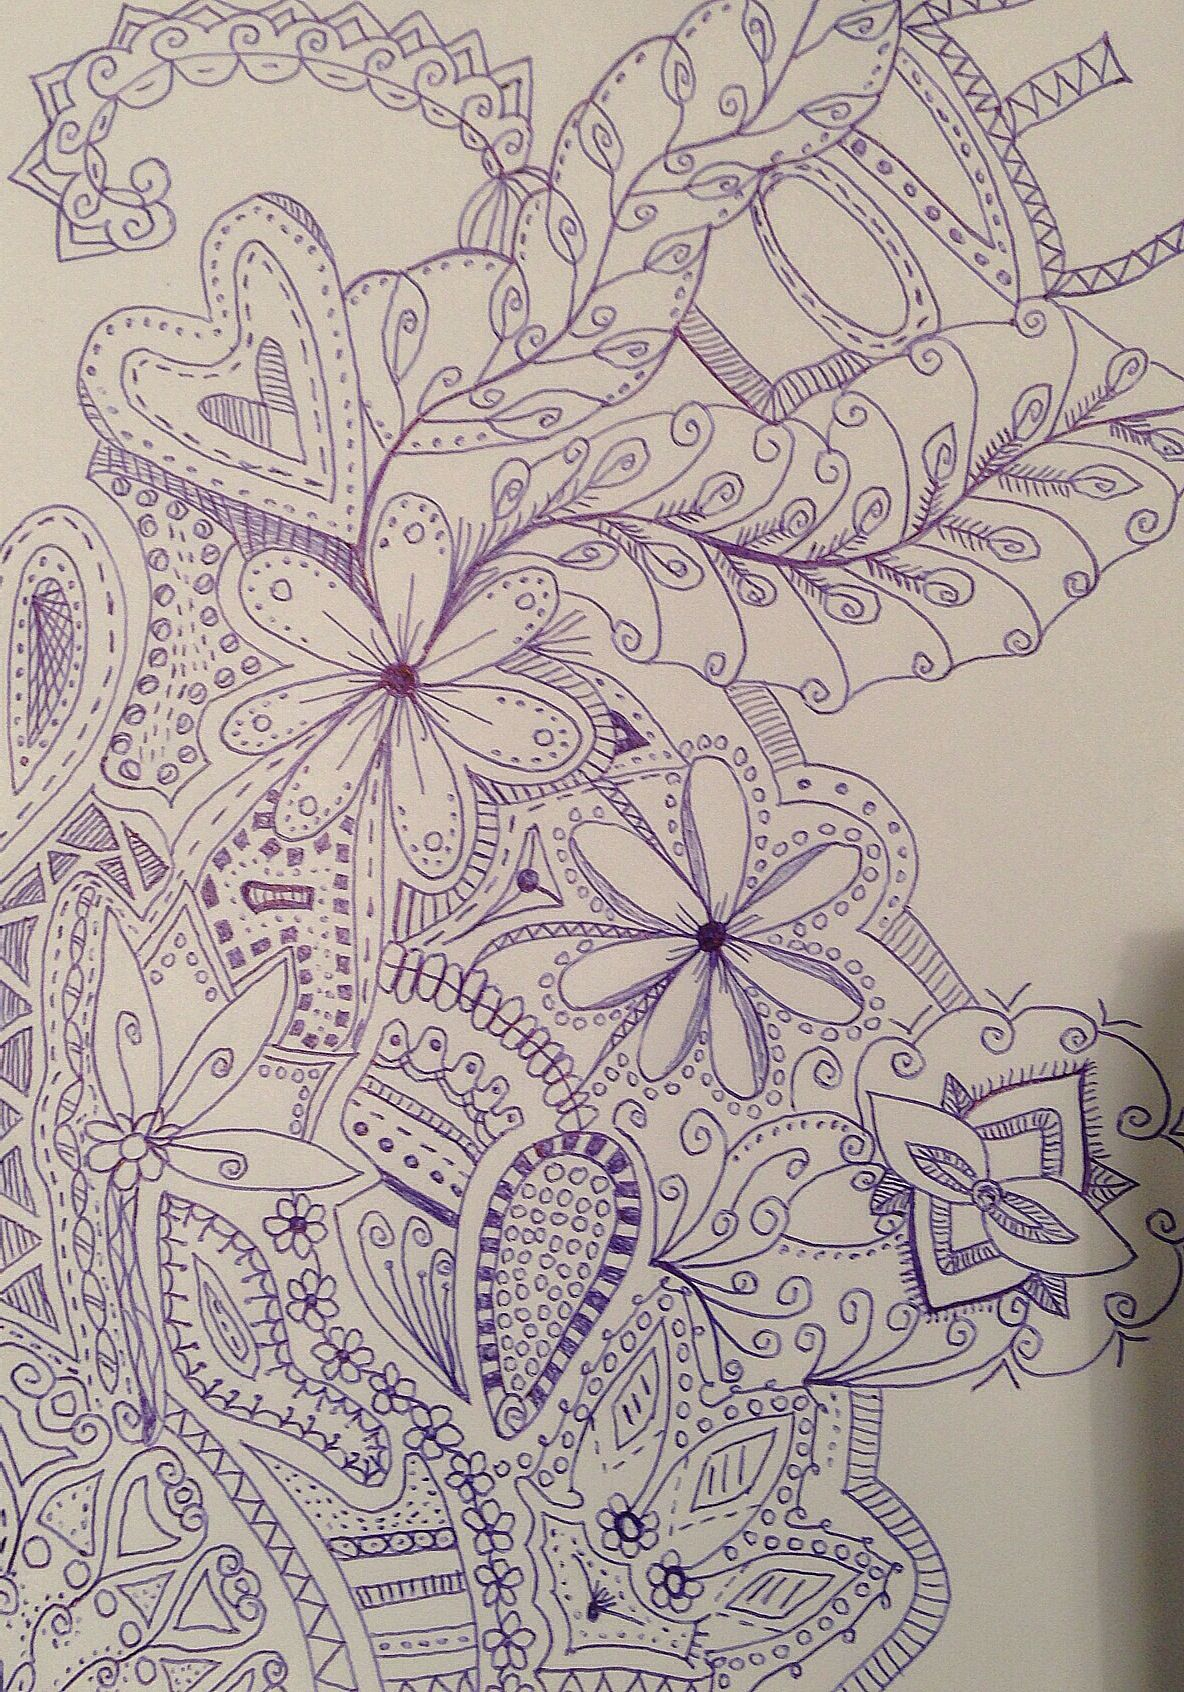 Doodling at scool:)